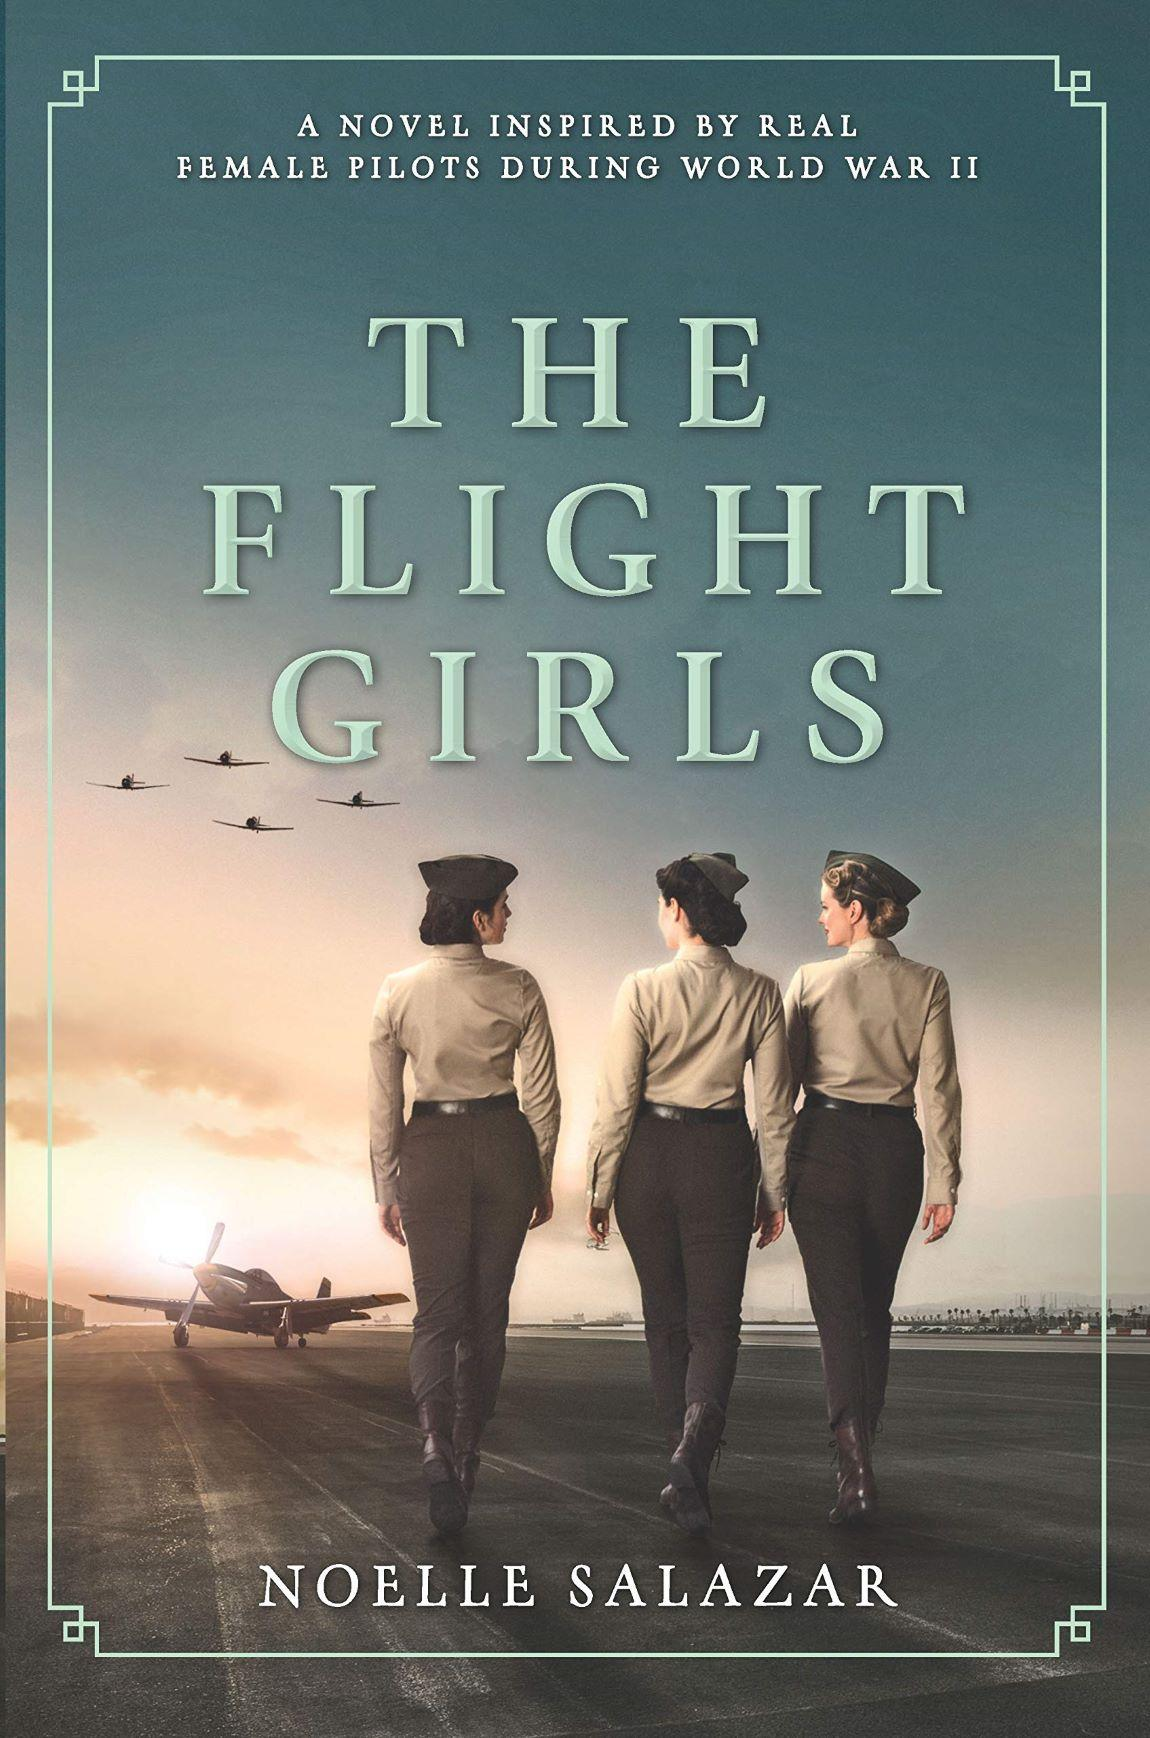 Lone Star Review: THE FLIGHT GIRLS BY NOELLE SALAZAR | Lone